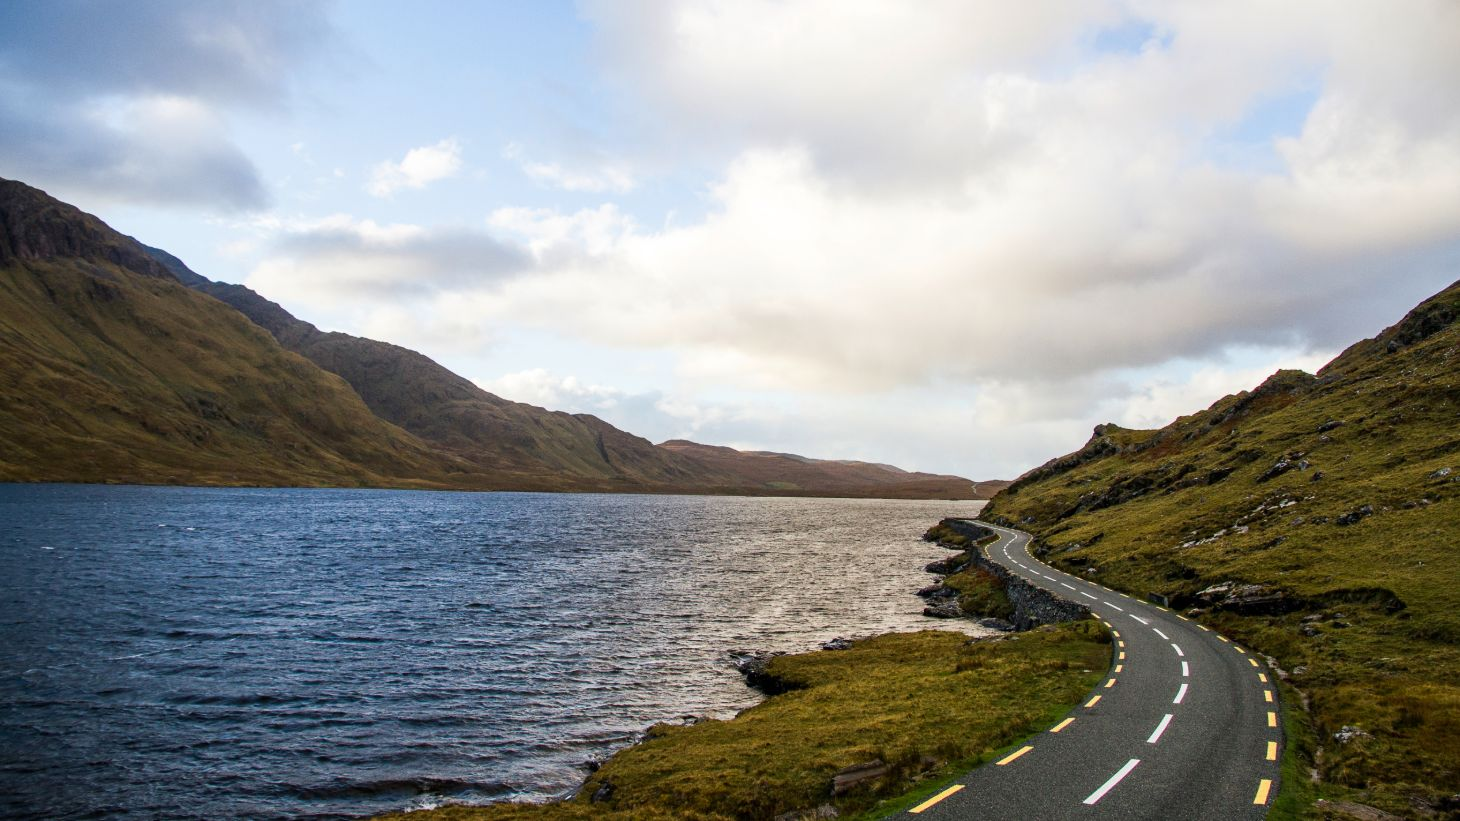 Driving the Wild Atlantic Way is an unforgettable experience.